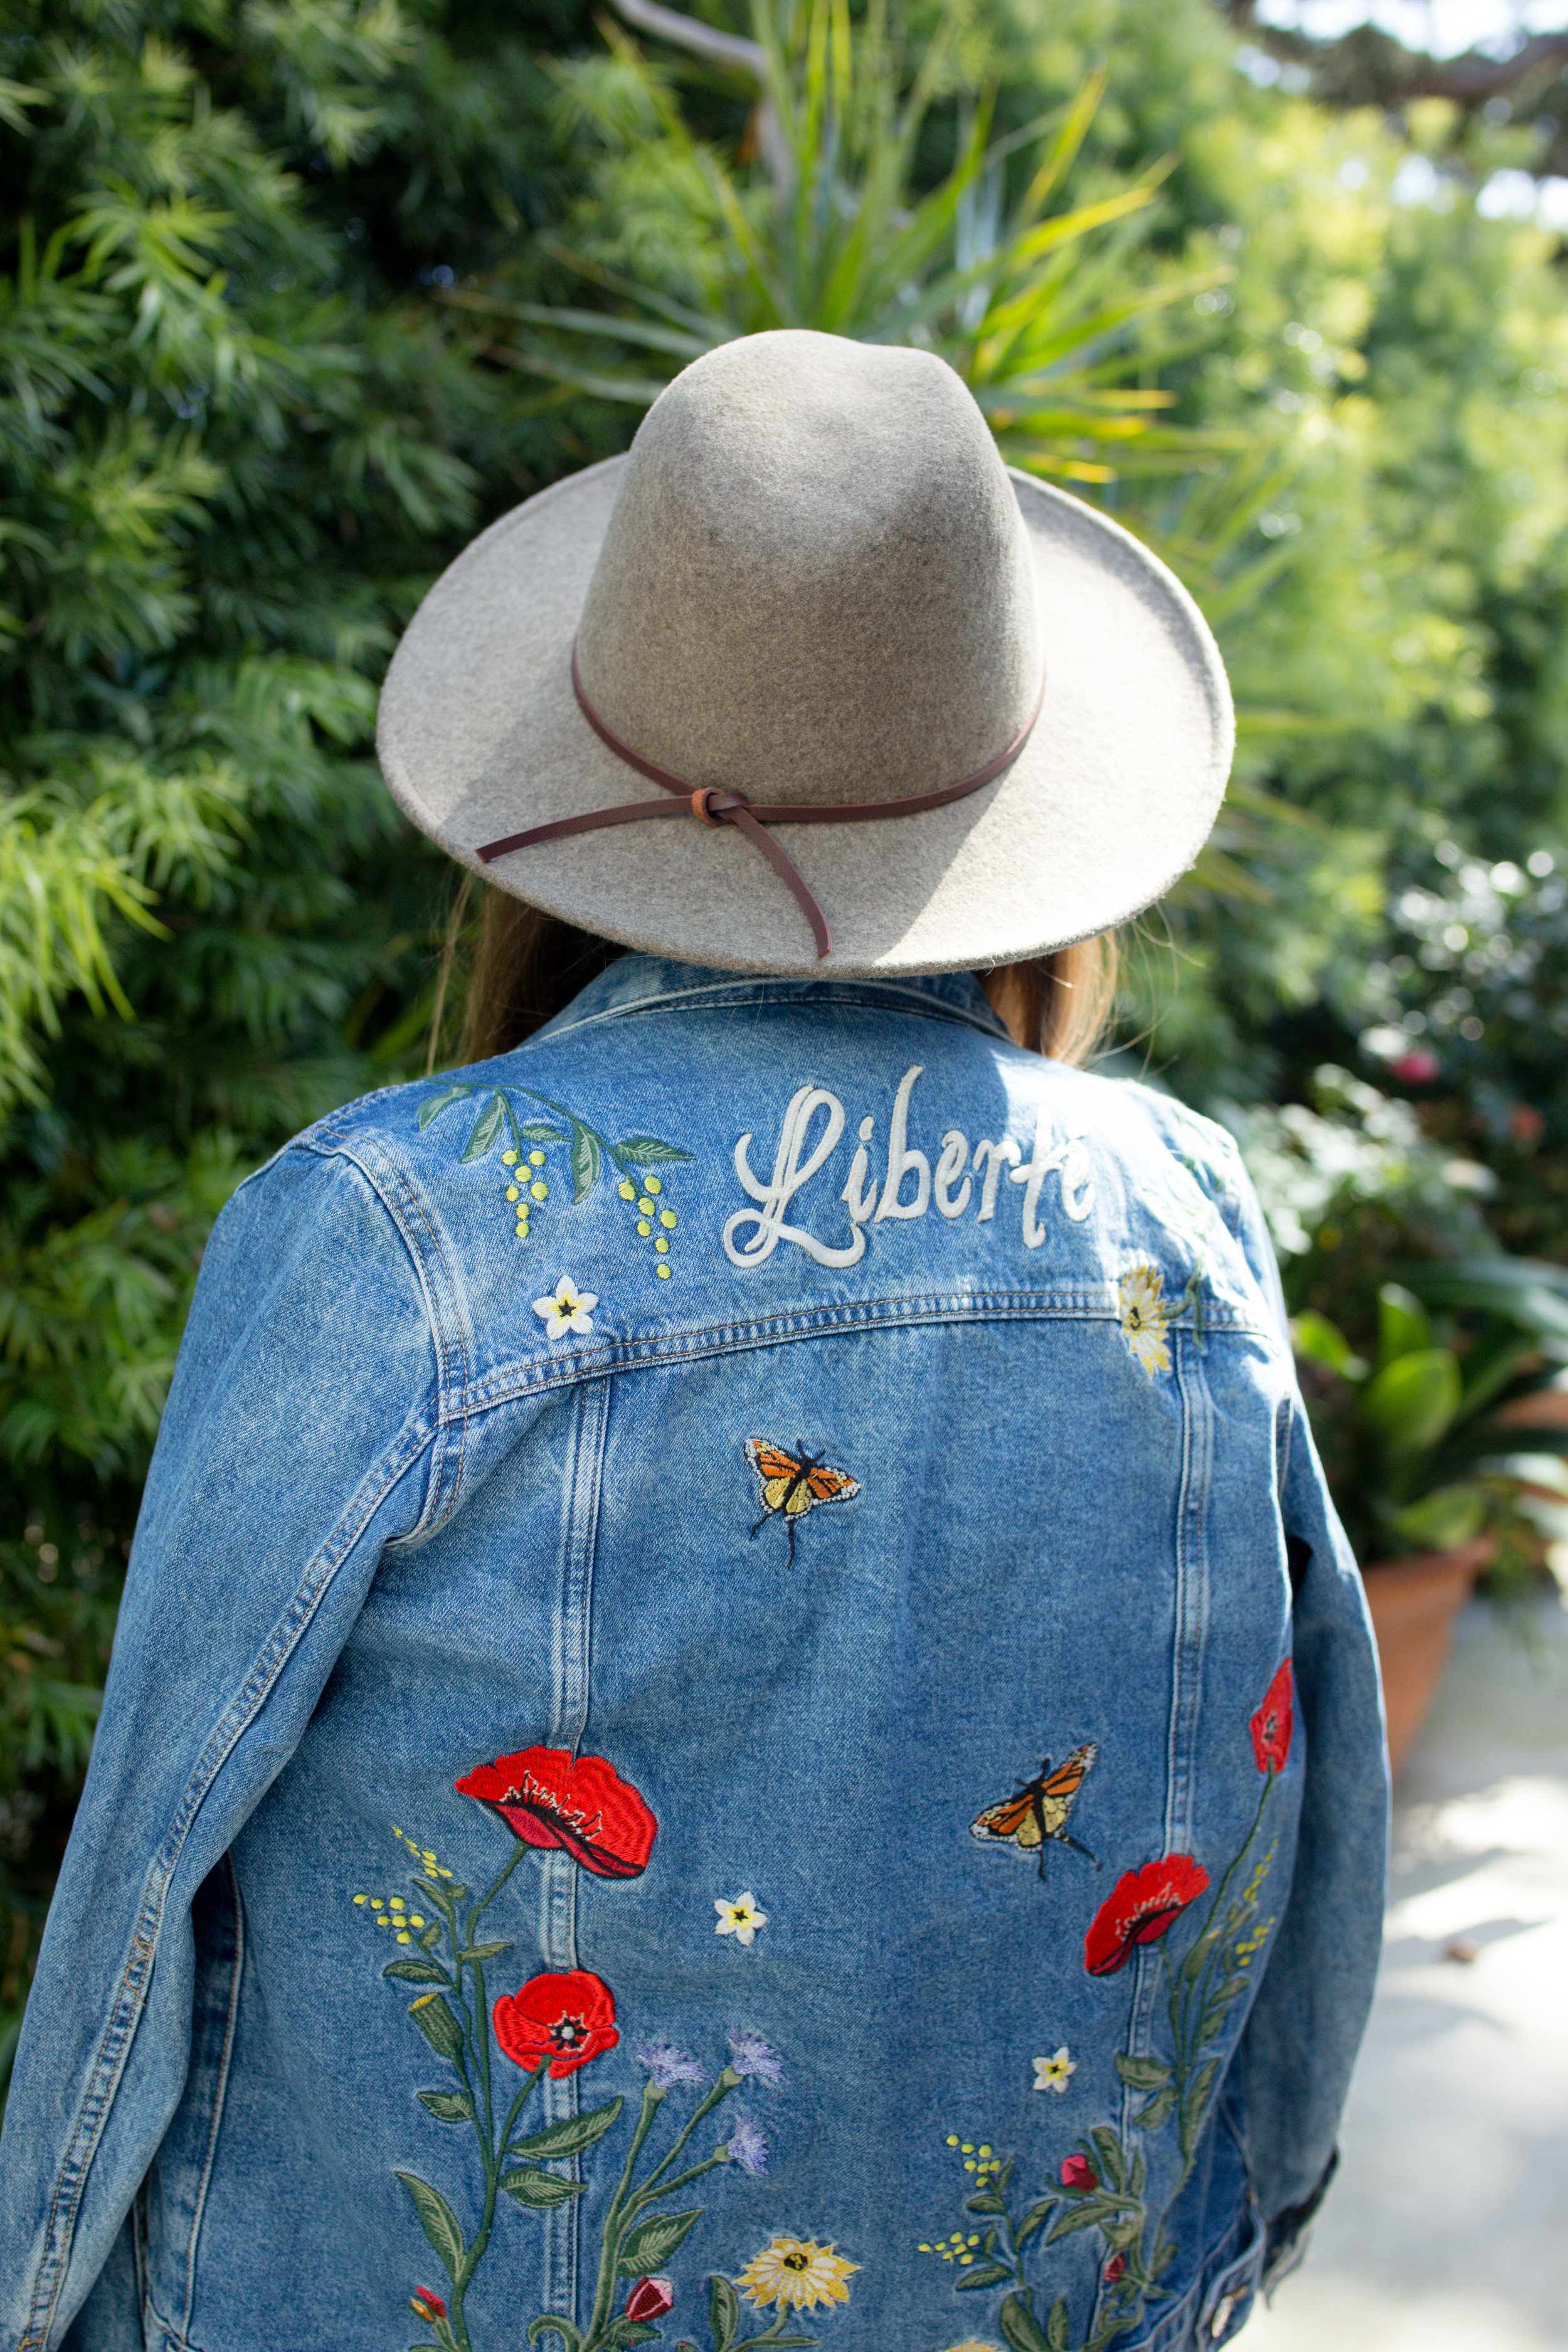 Girl wearing H&M Embroidered Denim Jacket and UO Structured Brim Felt Panama Hat infant of palm leaves